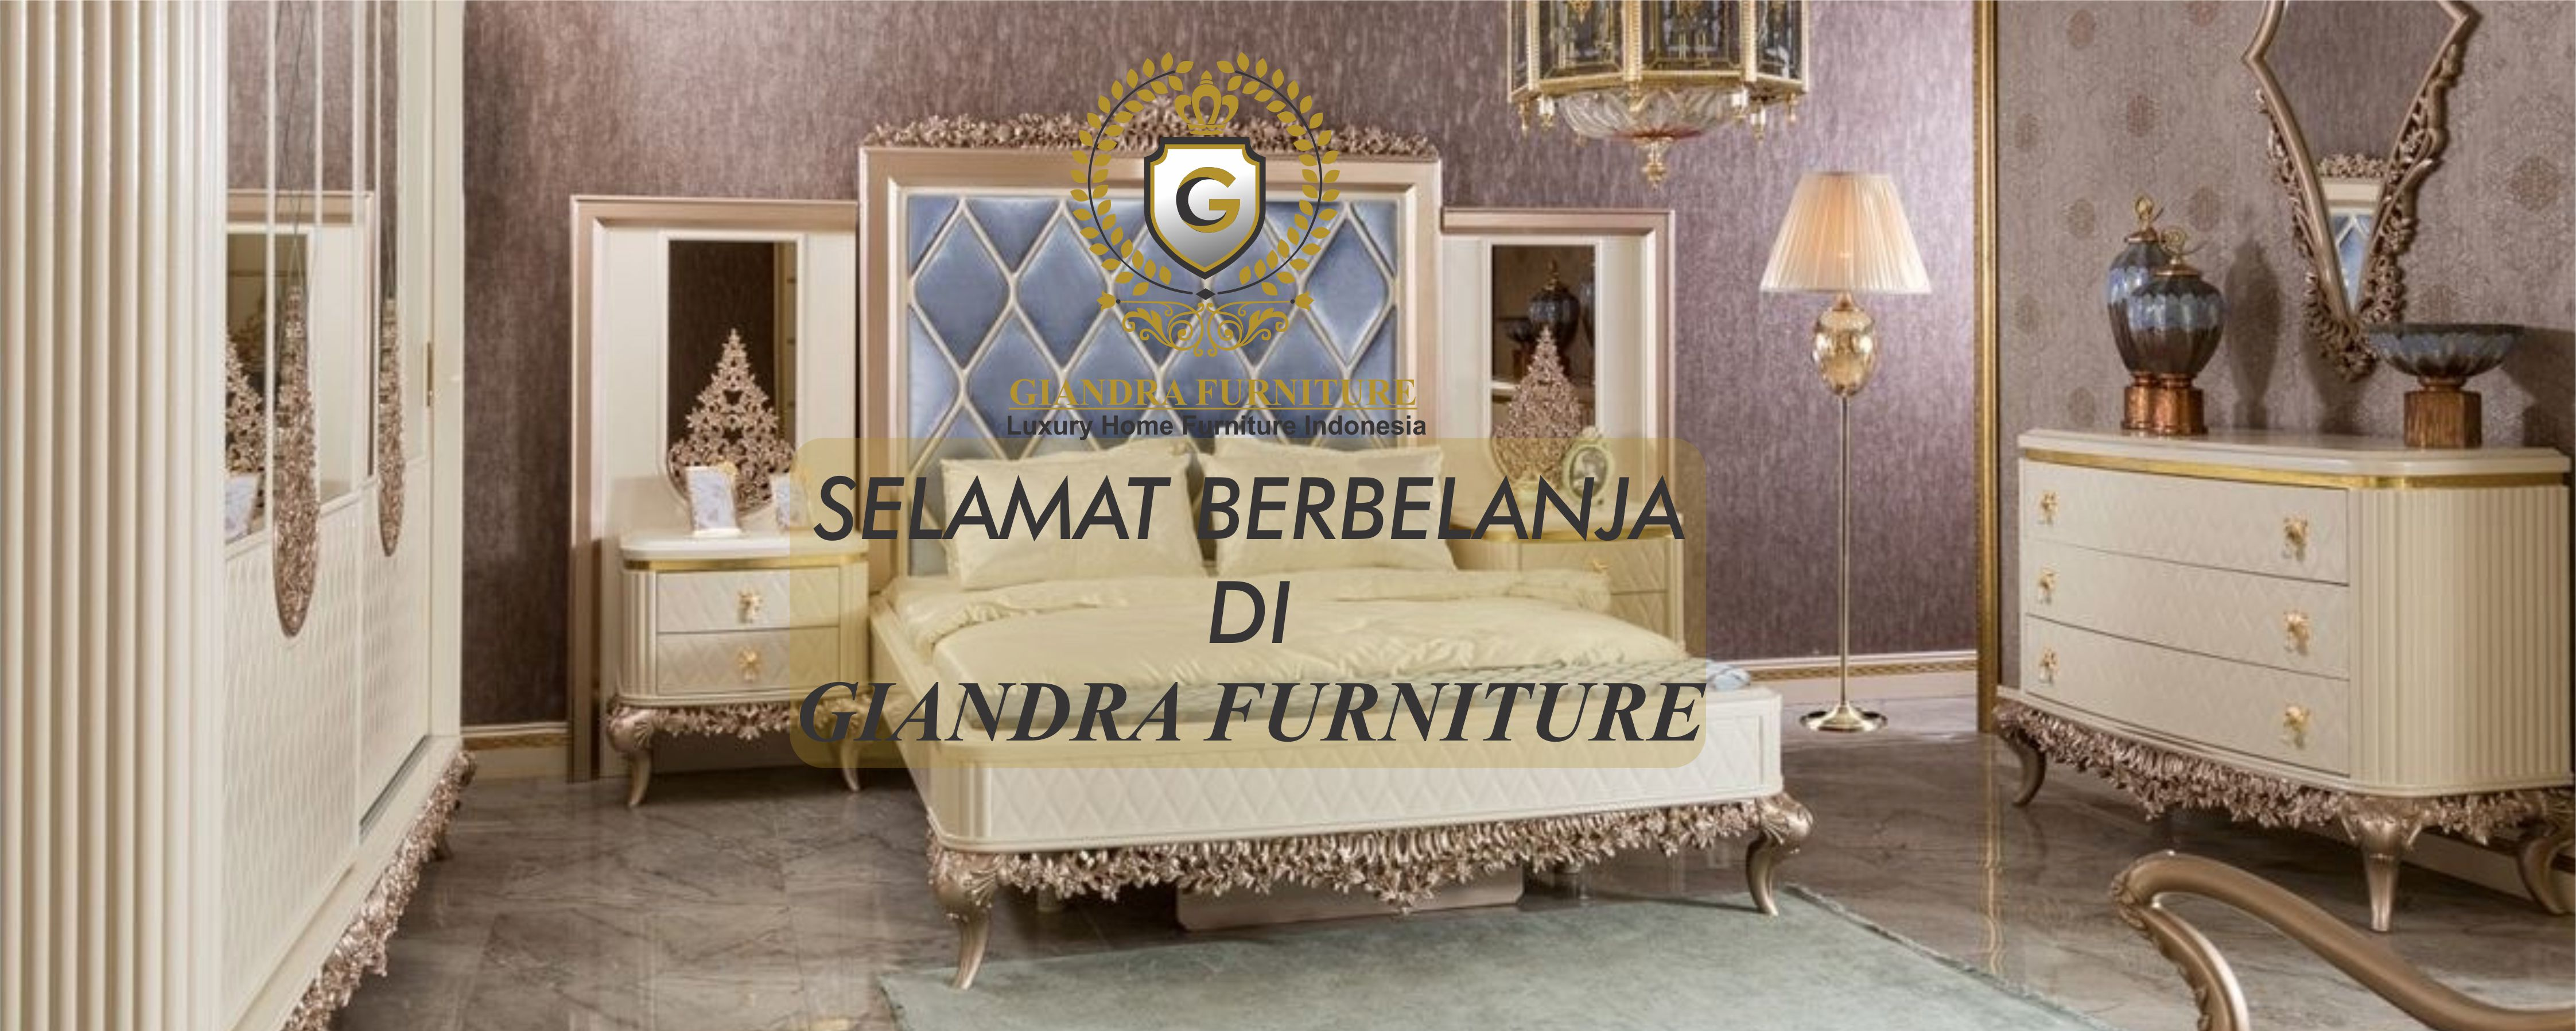 Giandra Furniture 5